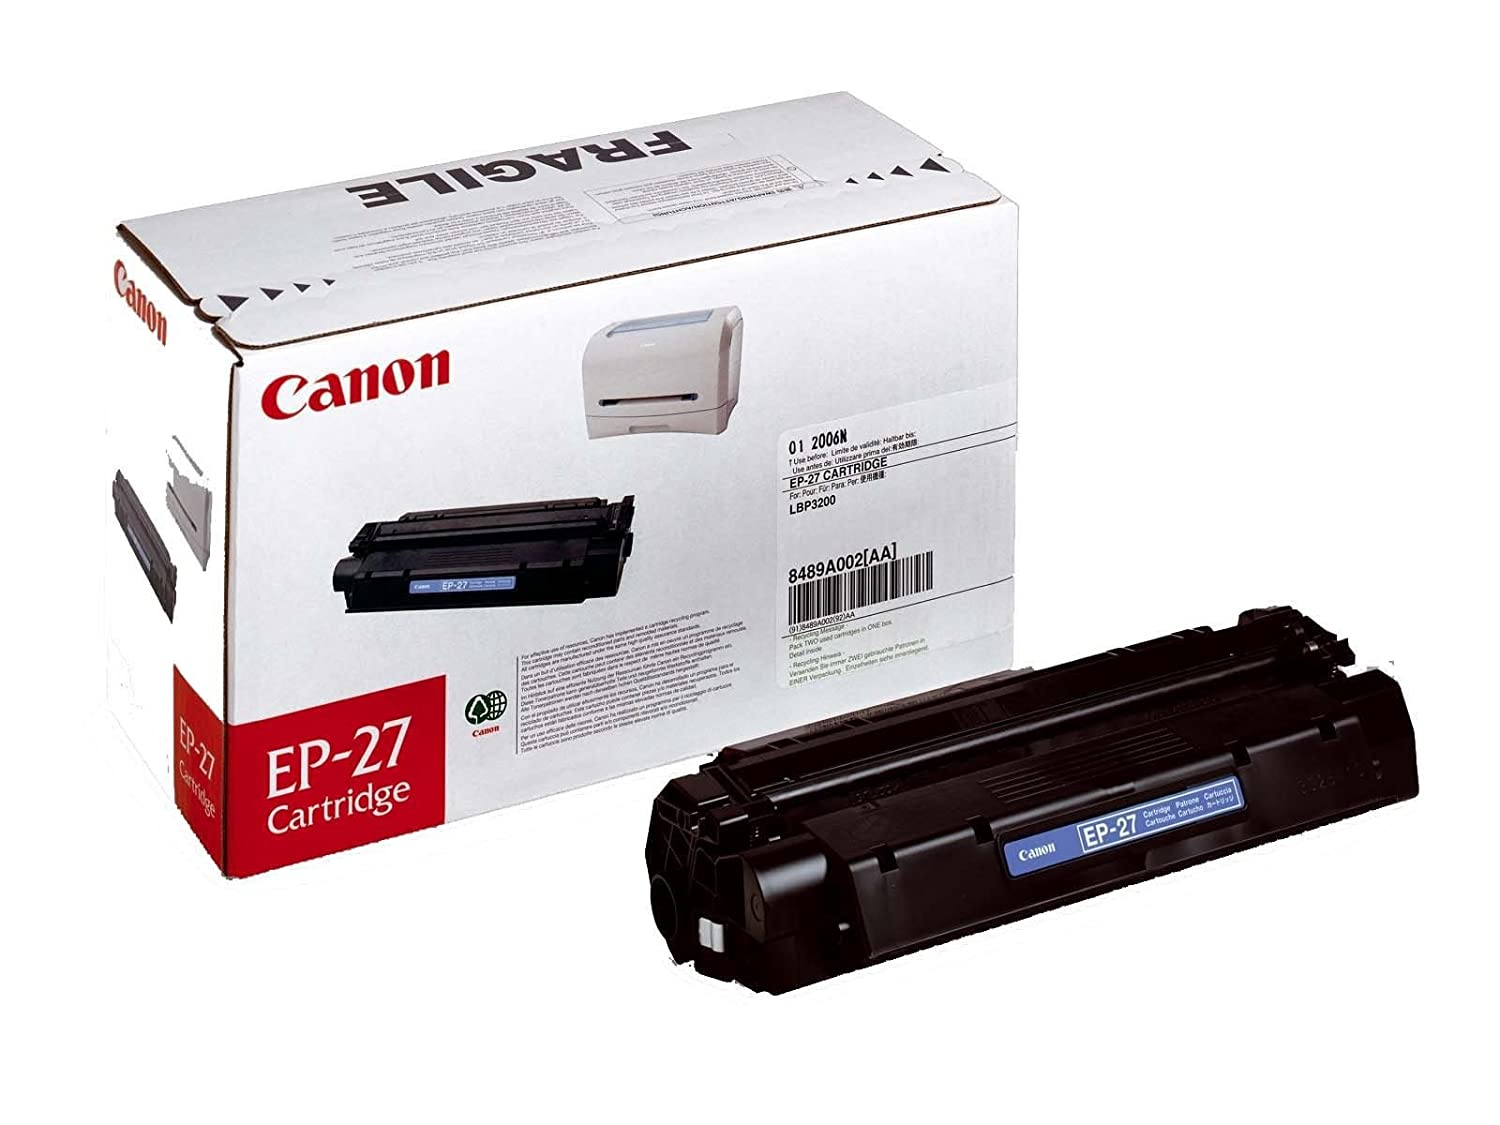 TONER CANON LBP-3200 MF3110/56 30/5730/5750/5770 EP-27: Amazon.es ...